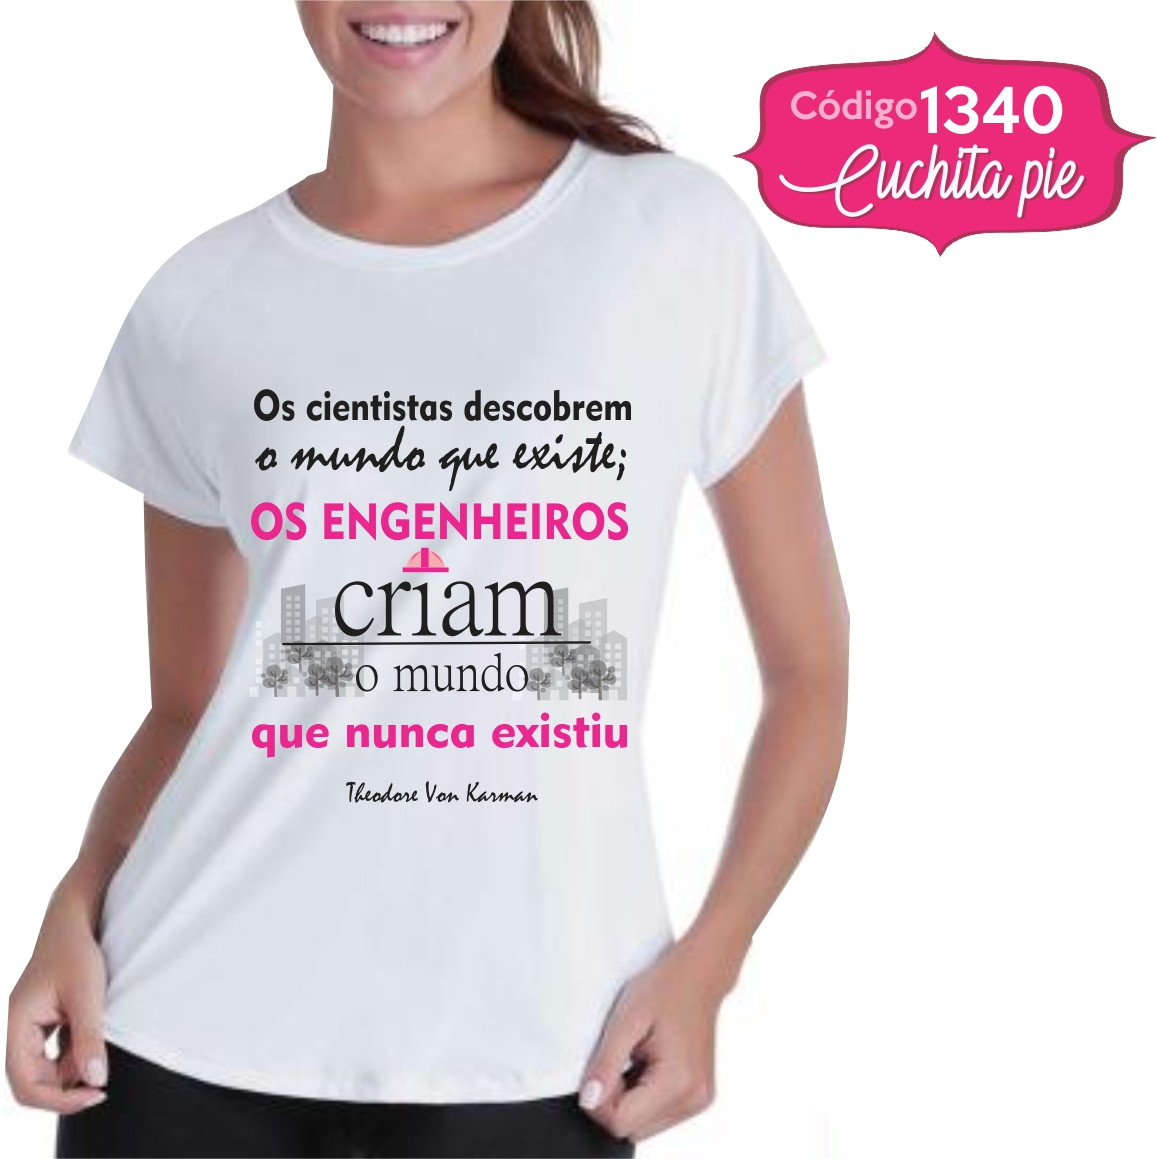 Baby Look Engenharia Civil Frase No Elo7 Cuchitapie B18586